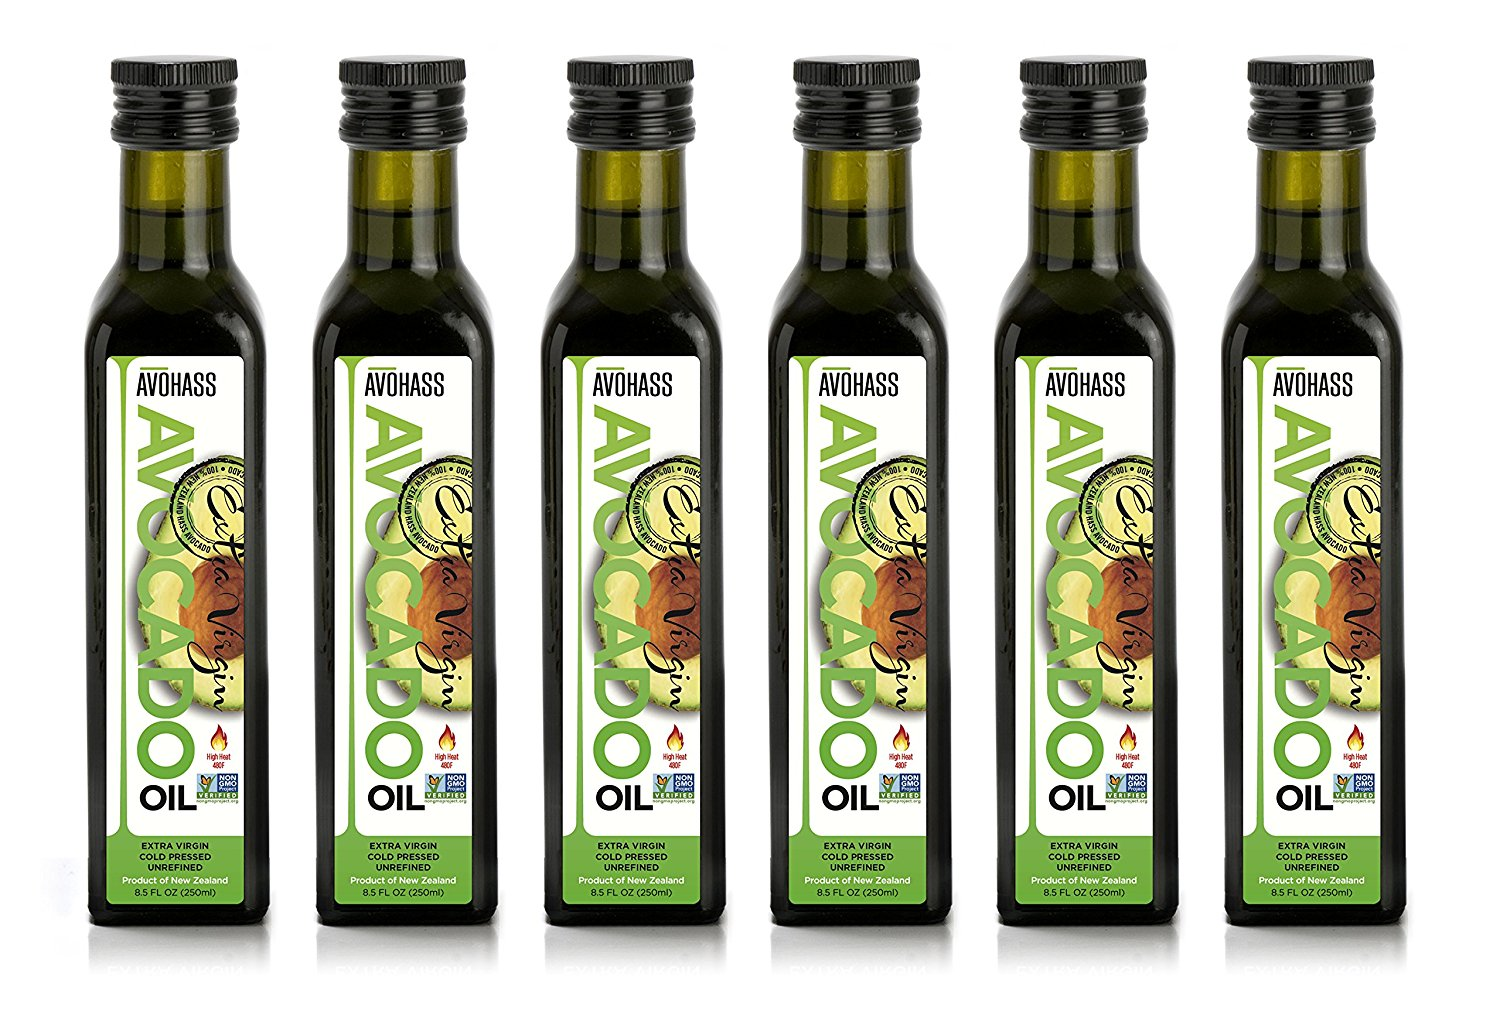 Avohass Extra Virgin Avocado Oil 6 Bottle Case